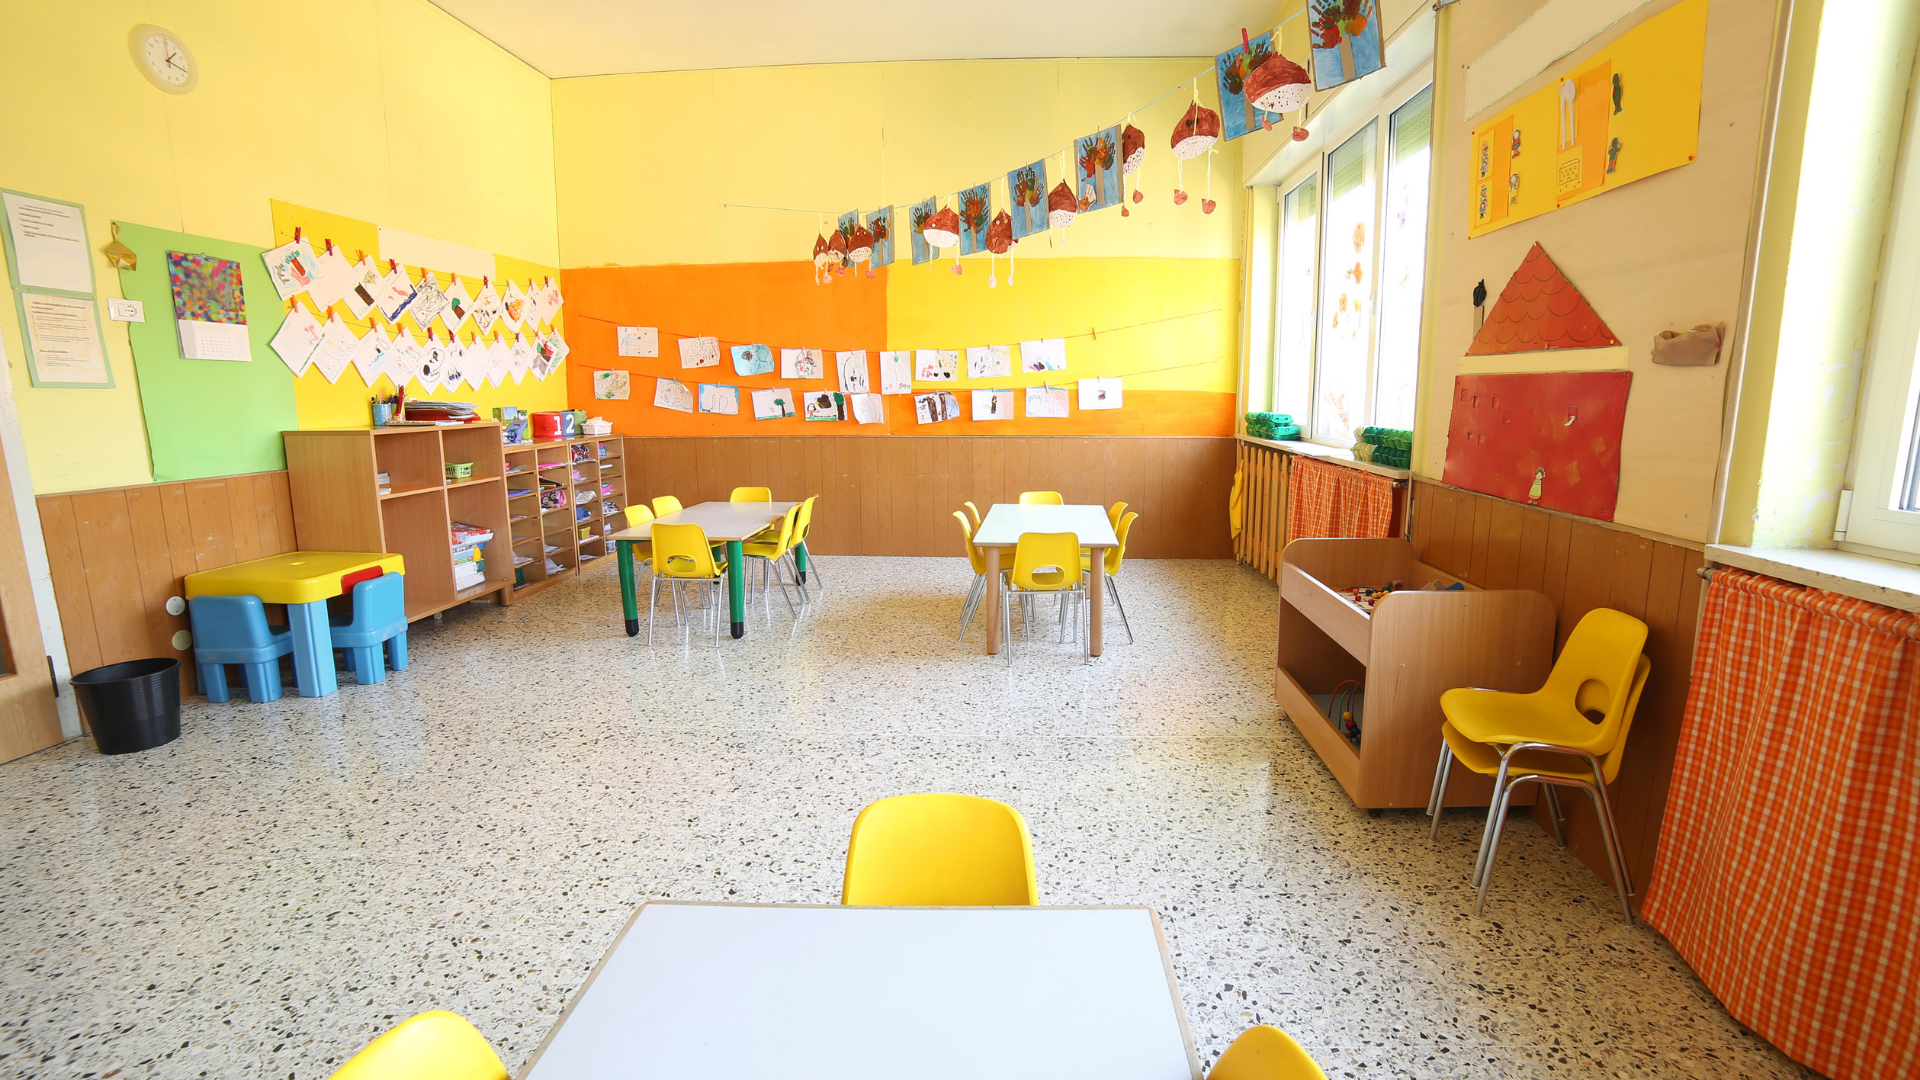 5 cleaning tips for a healthy daycare center